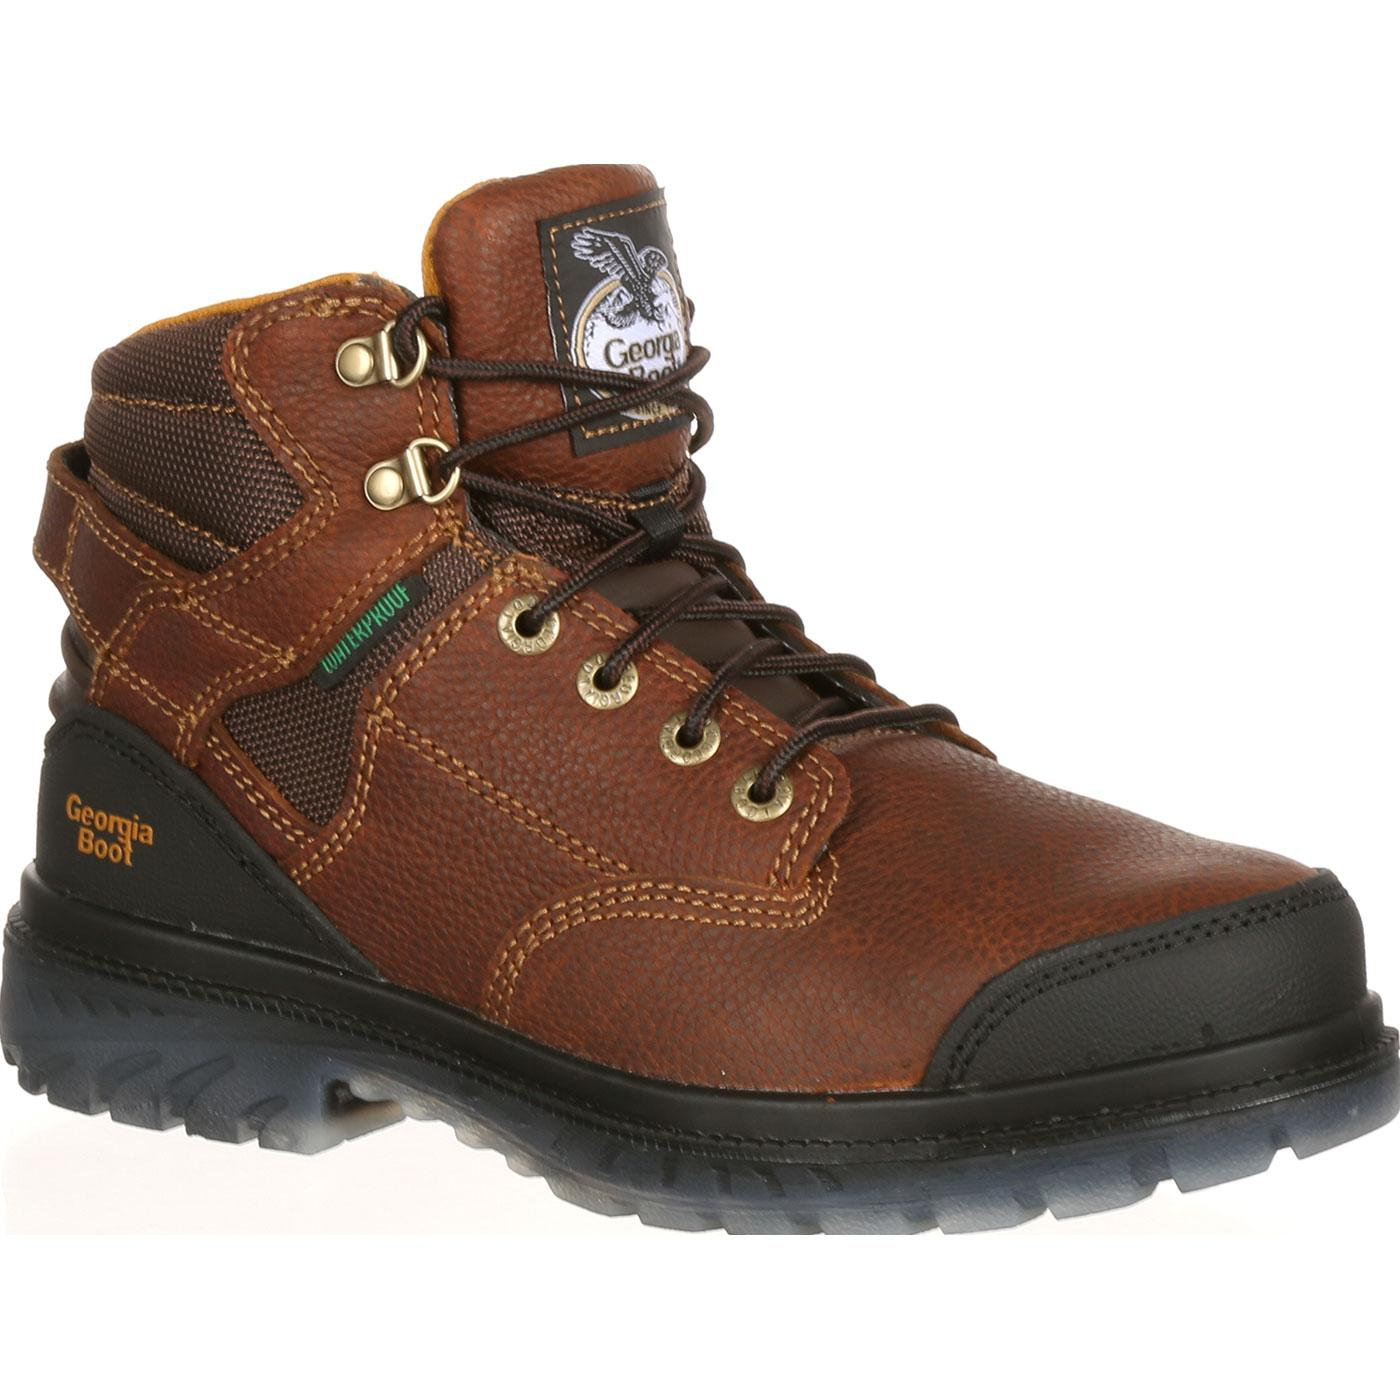 Shop men's footwear including handcrafted shoes, boots, and sneakers from Tretorn!